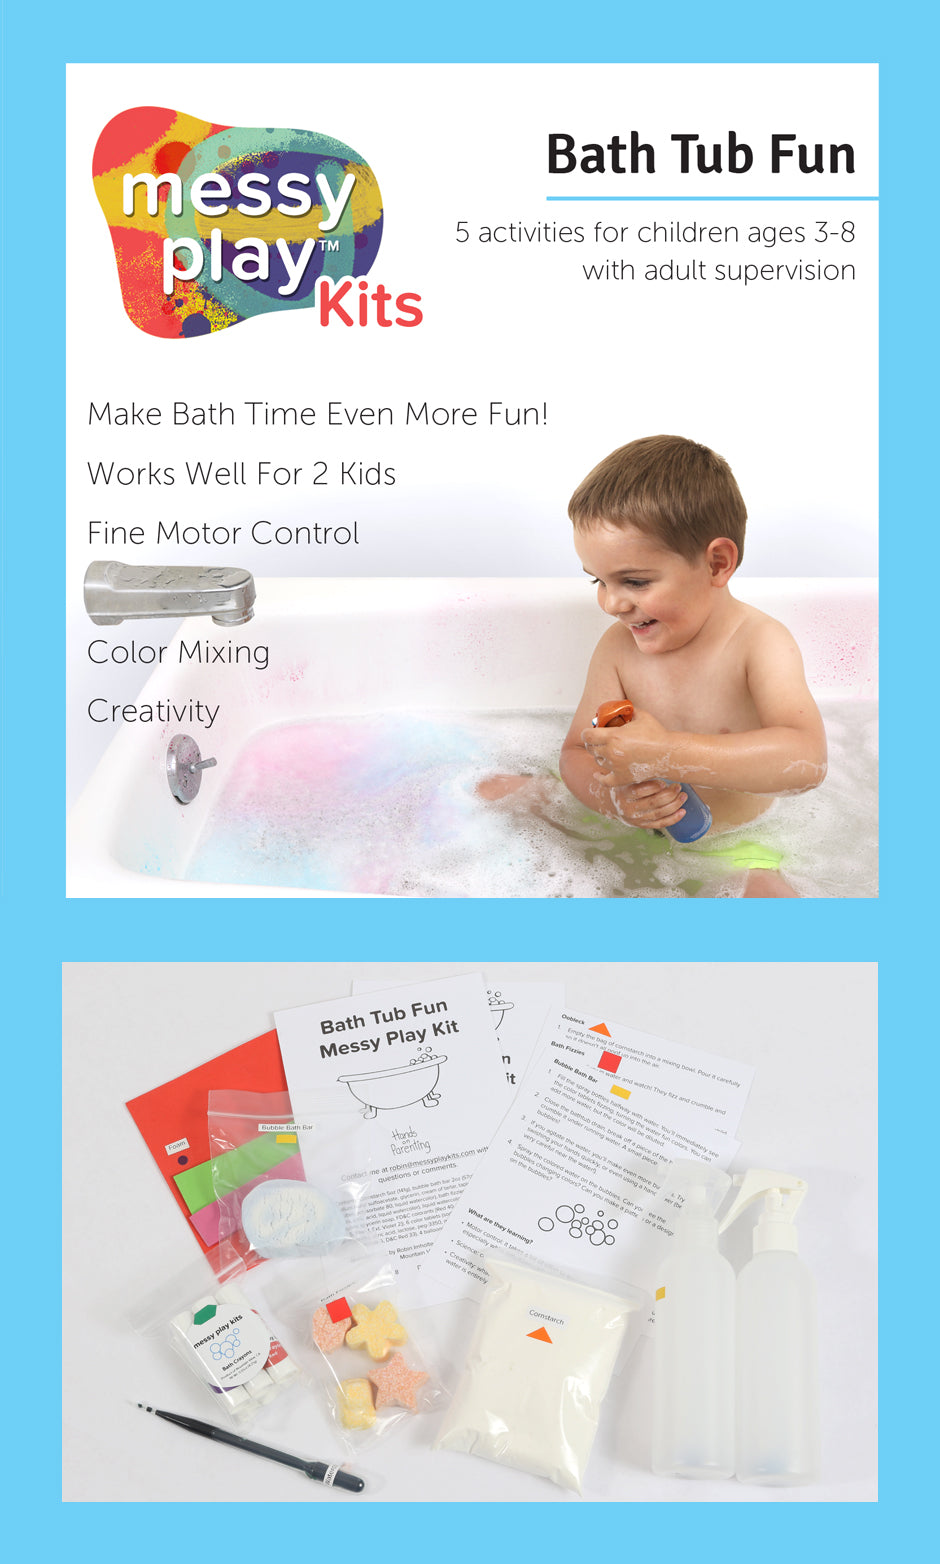 Bath Tub Fun Messy Play Kit Label